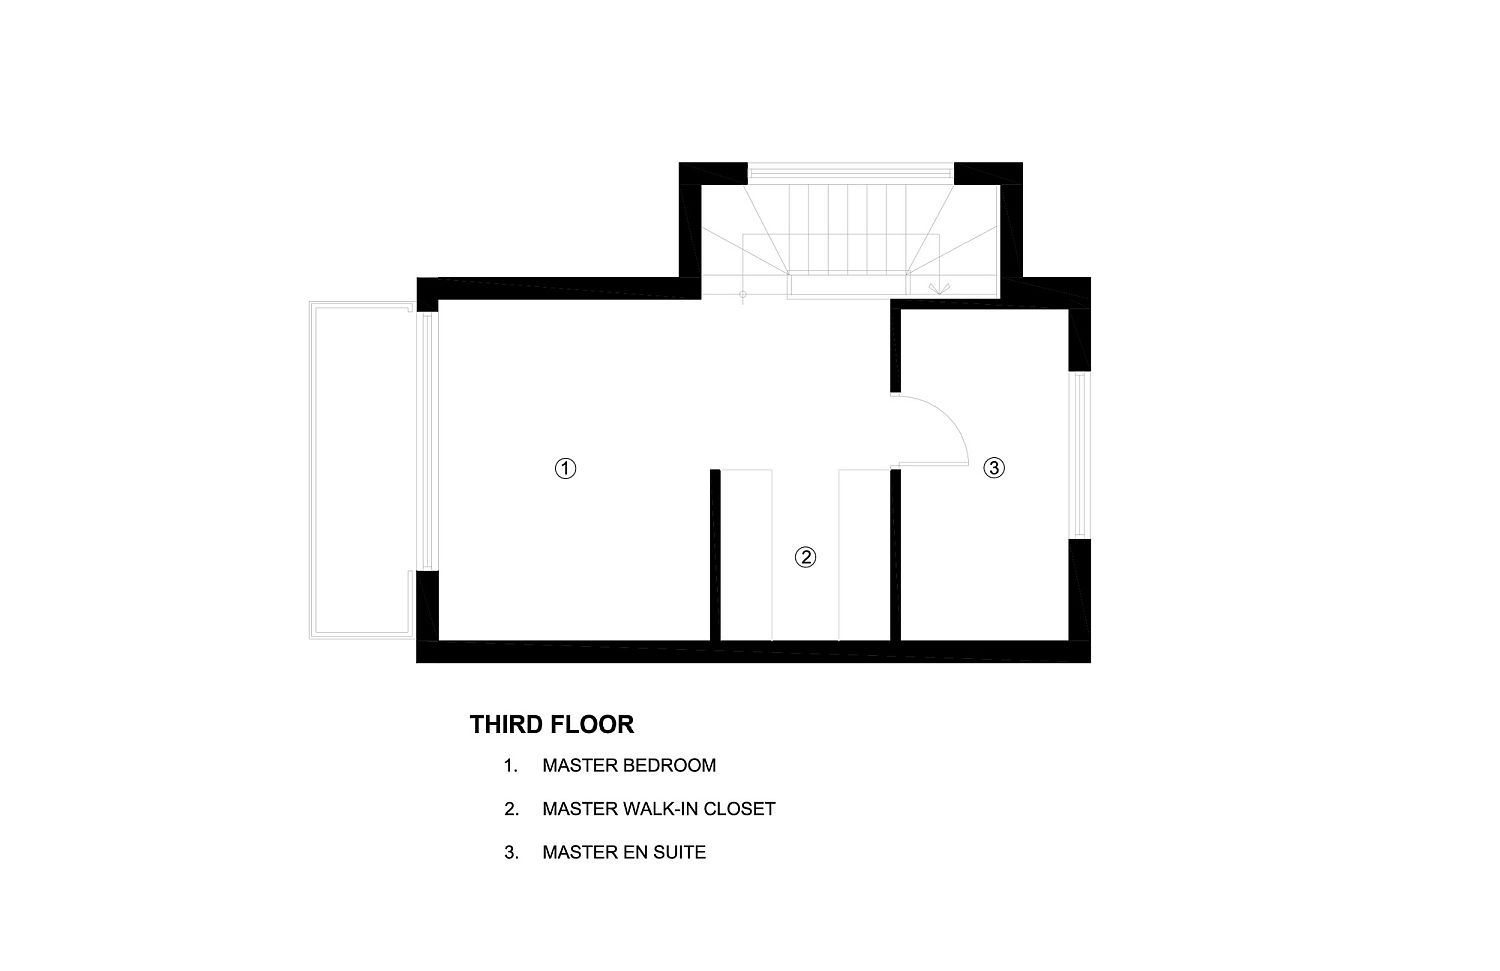 Third floor plan of the Art House